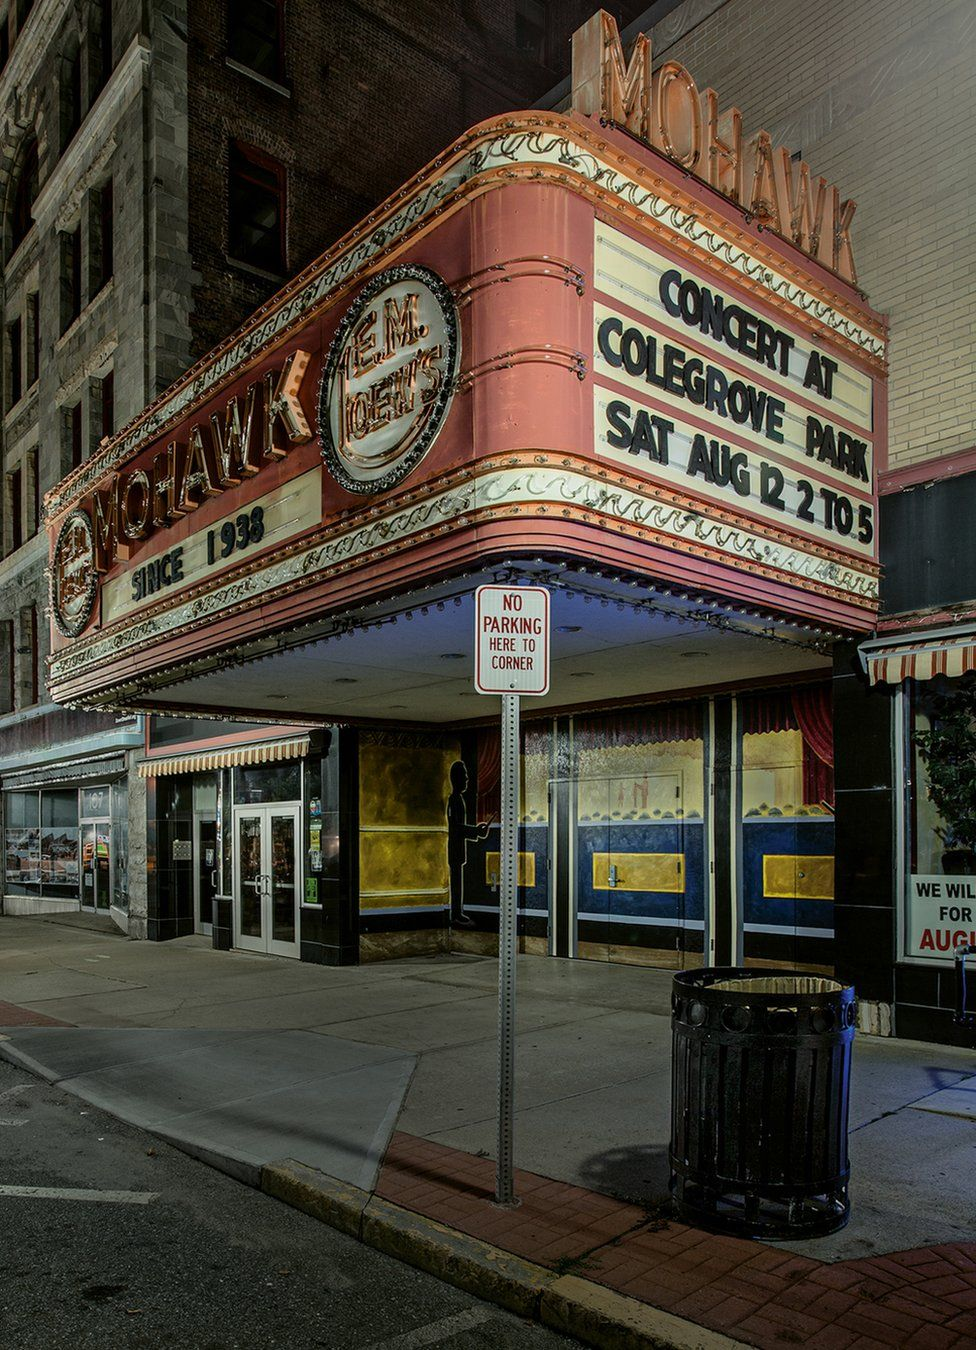 A night view of a closed old-fashioned concert venue